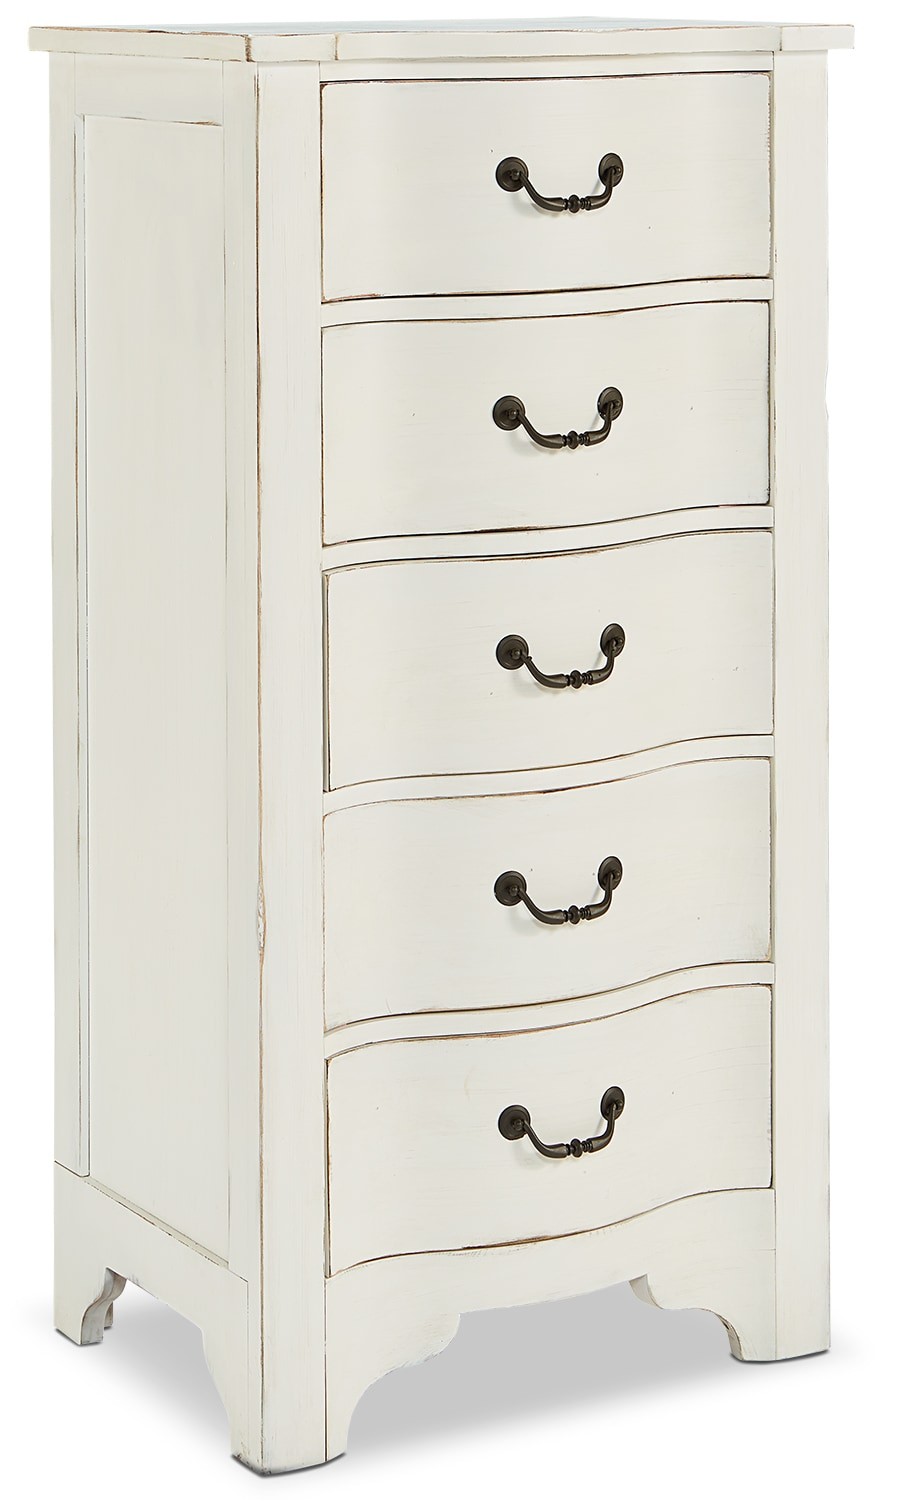 Bedroom Furniture - La Grange Demi-Chest - White